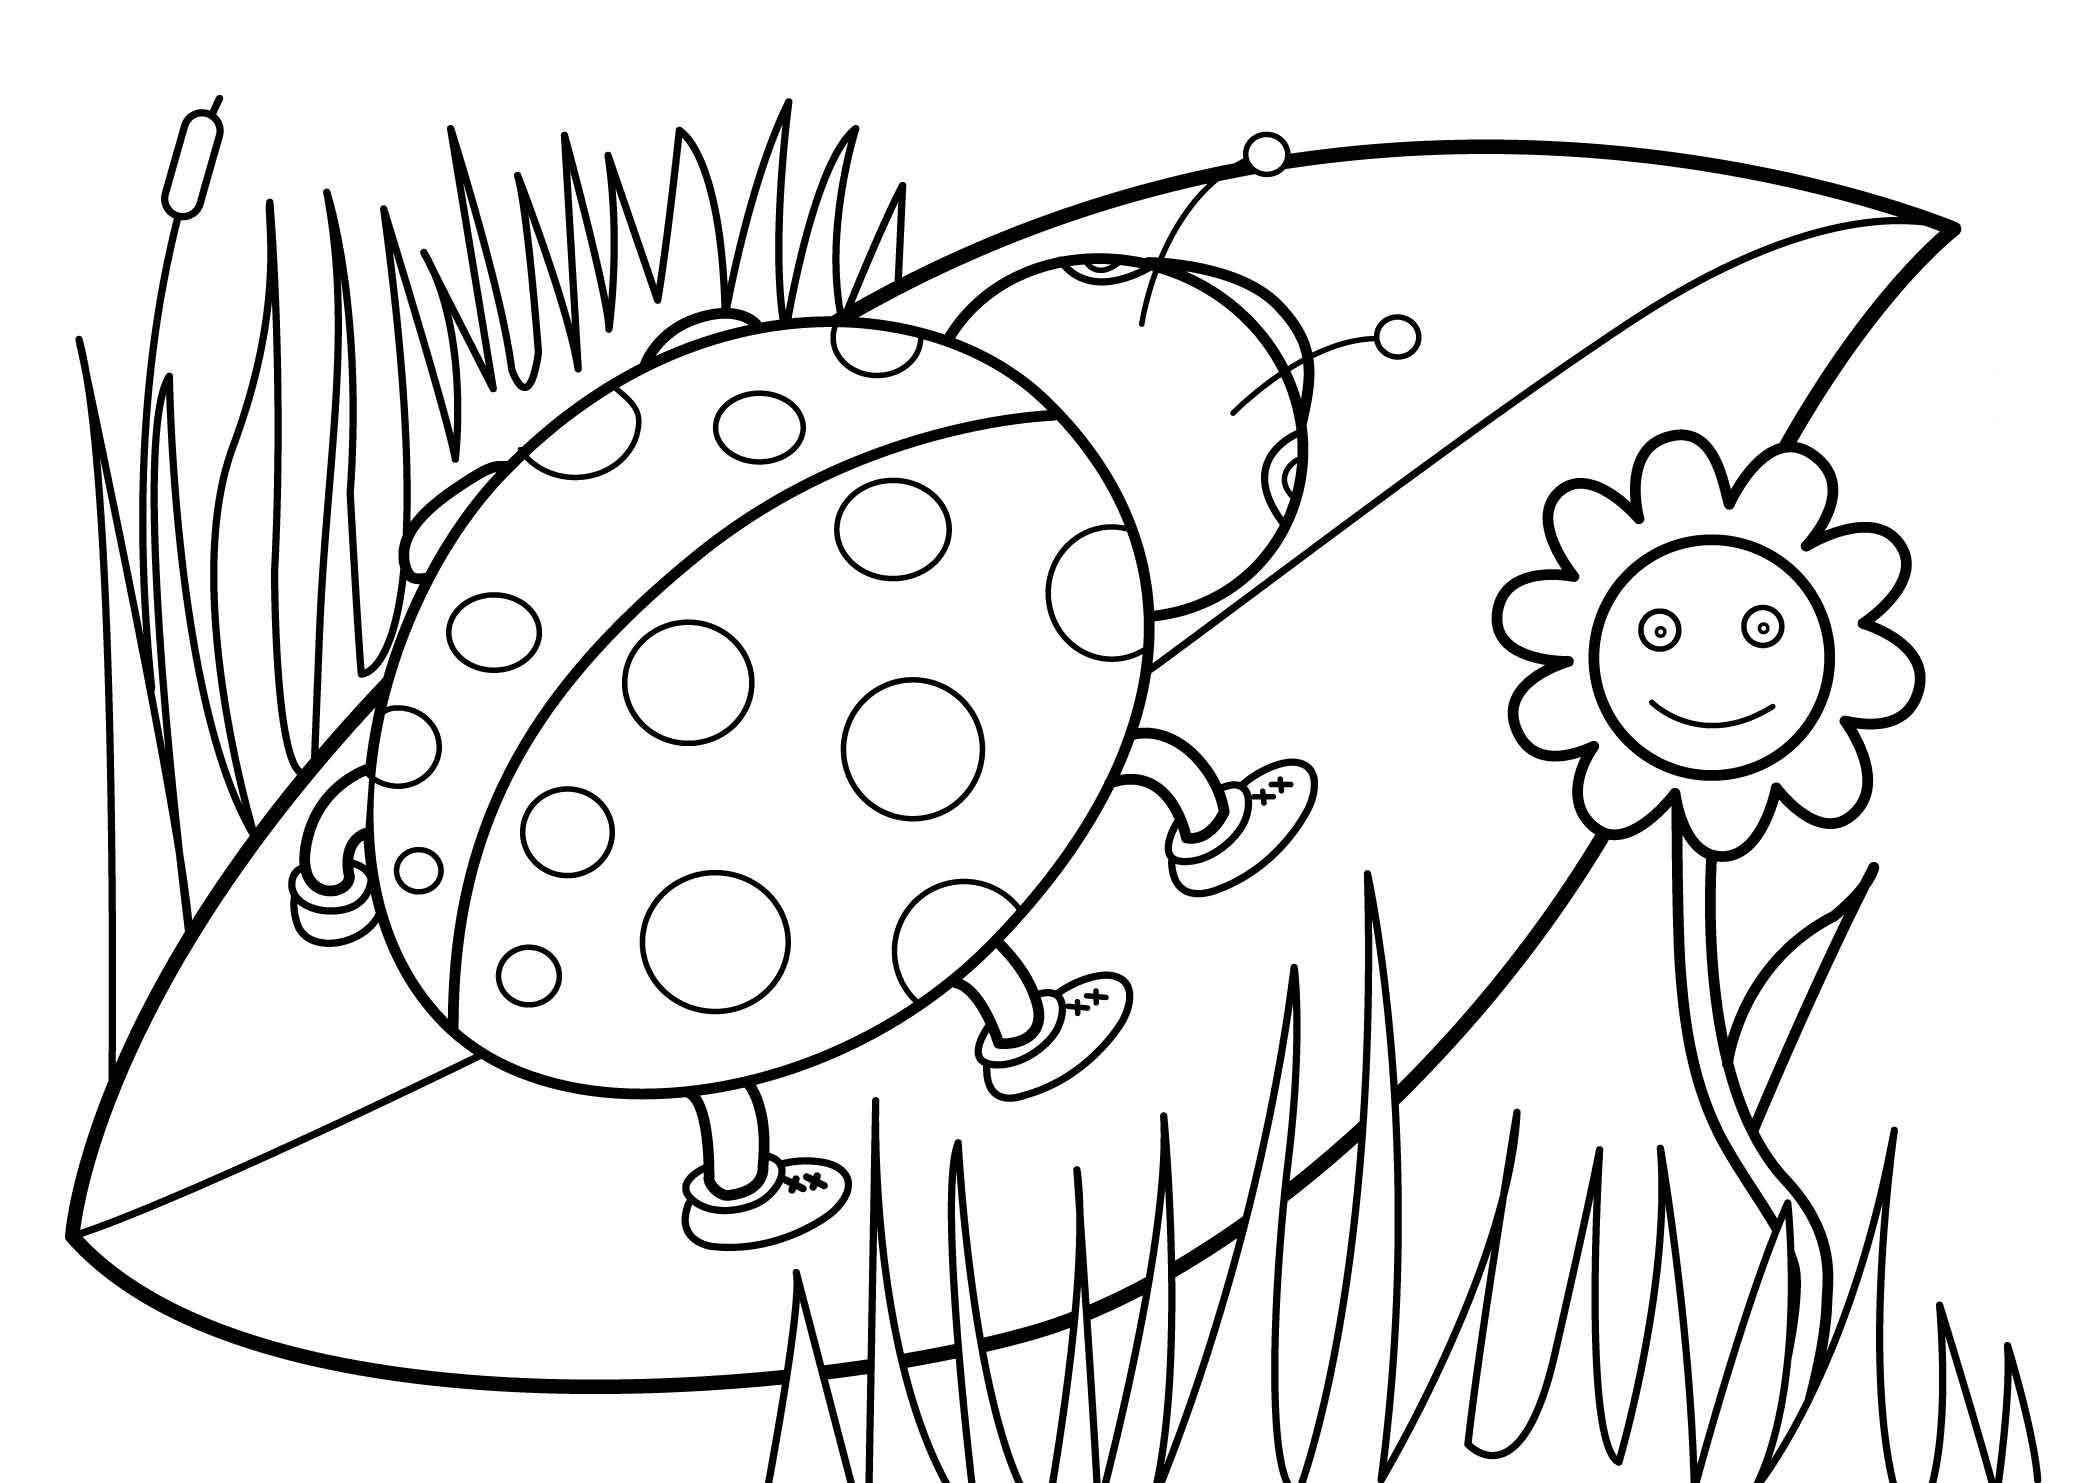 coloring pictures for kids free printable tangled coloring pages for kids cool2bkids coloring pictures kids for